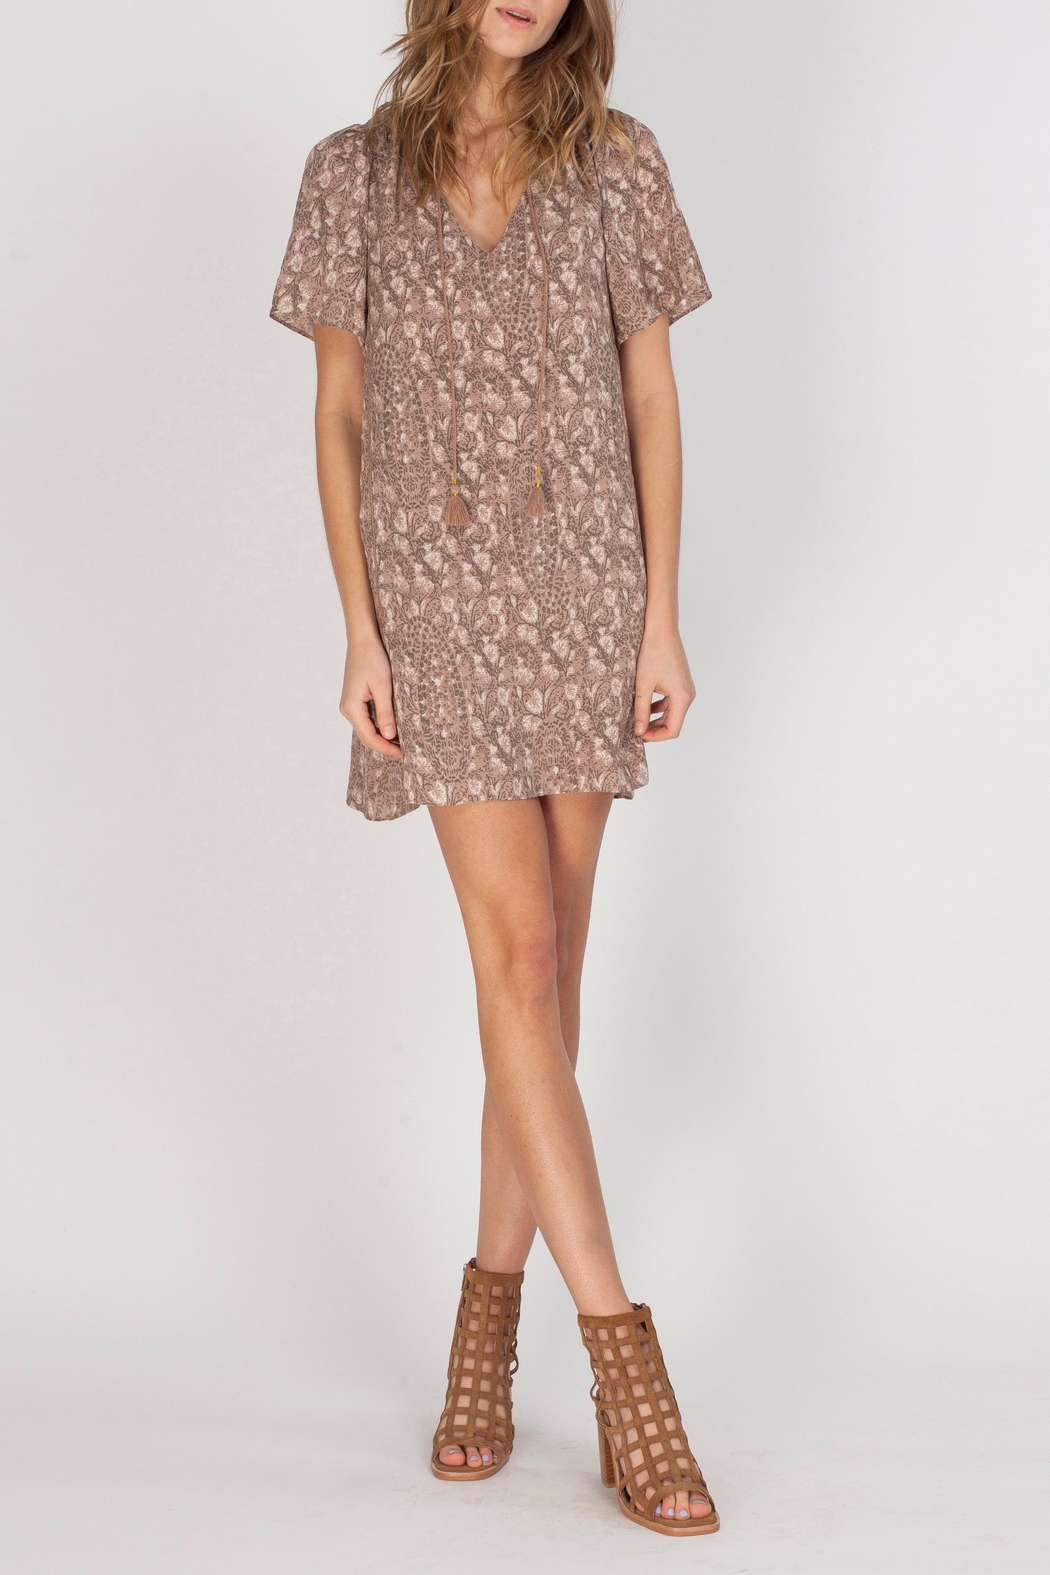 Gentle Fawn V-Neck Printed Dress - Front Full Image